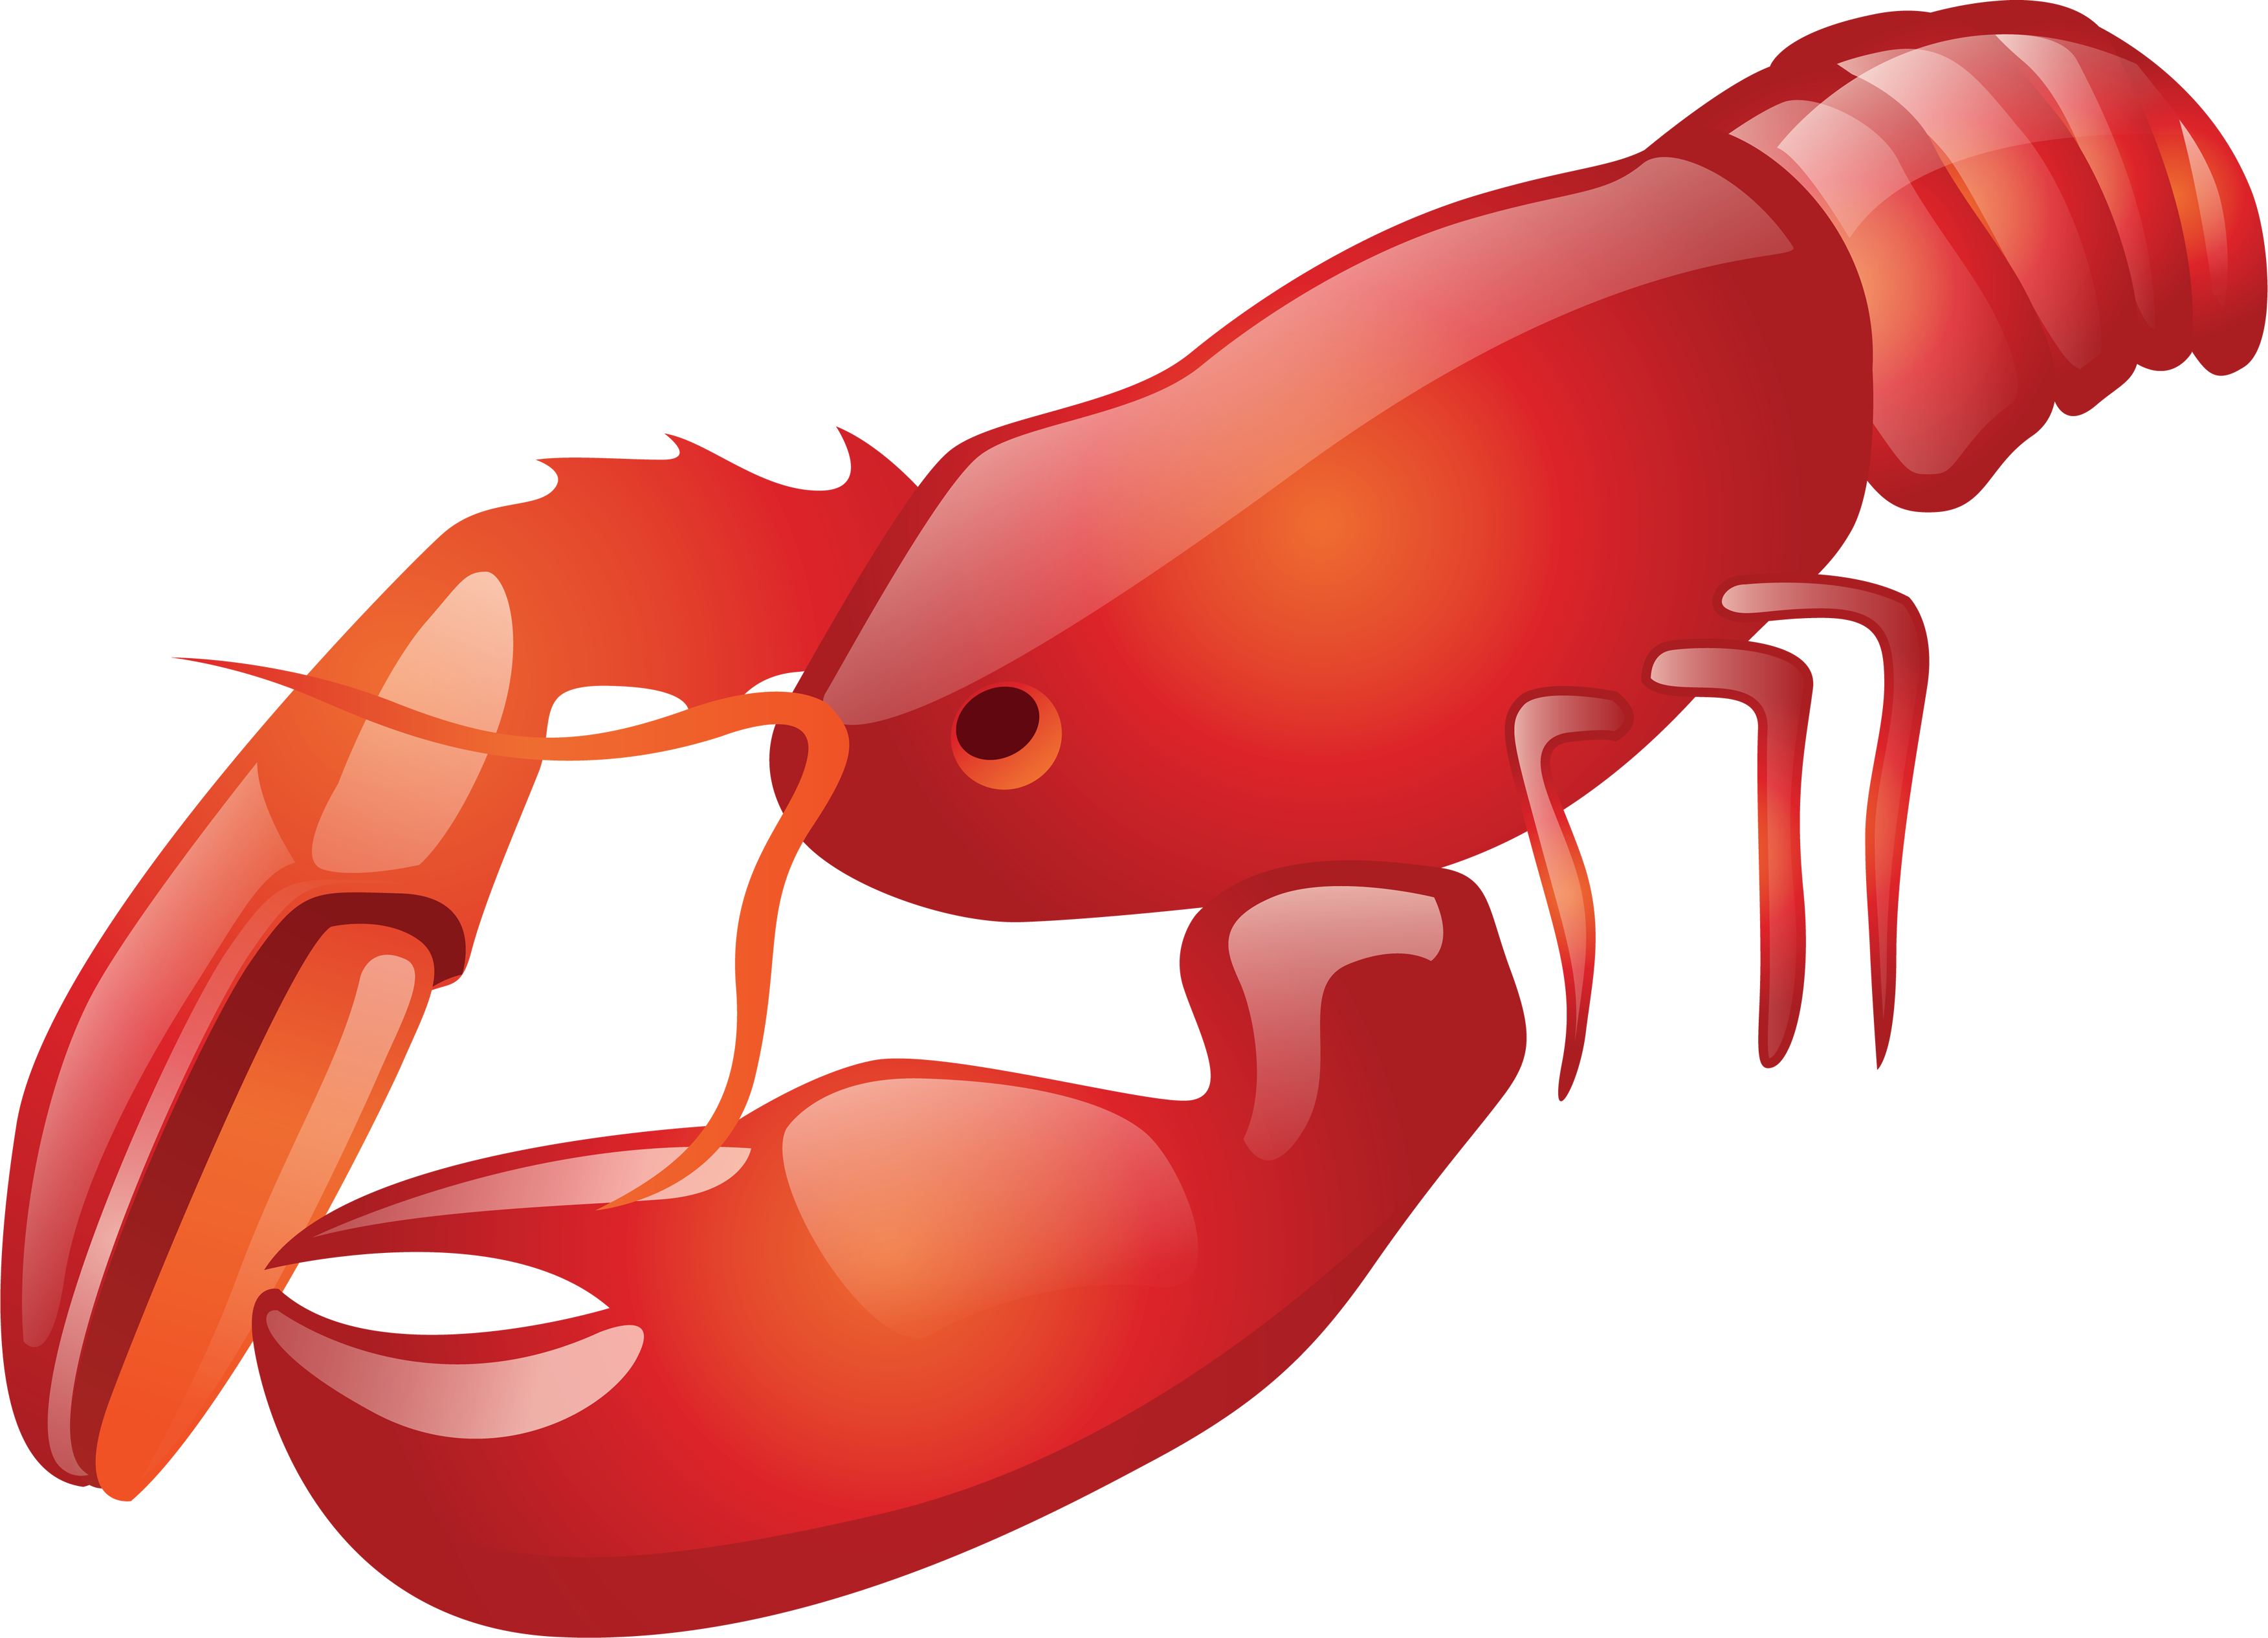 Png animal pinterest. Lobster clipart life